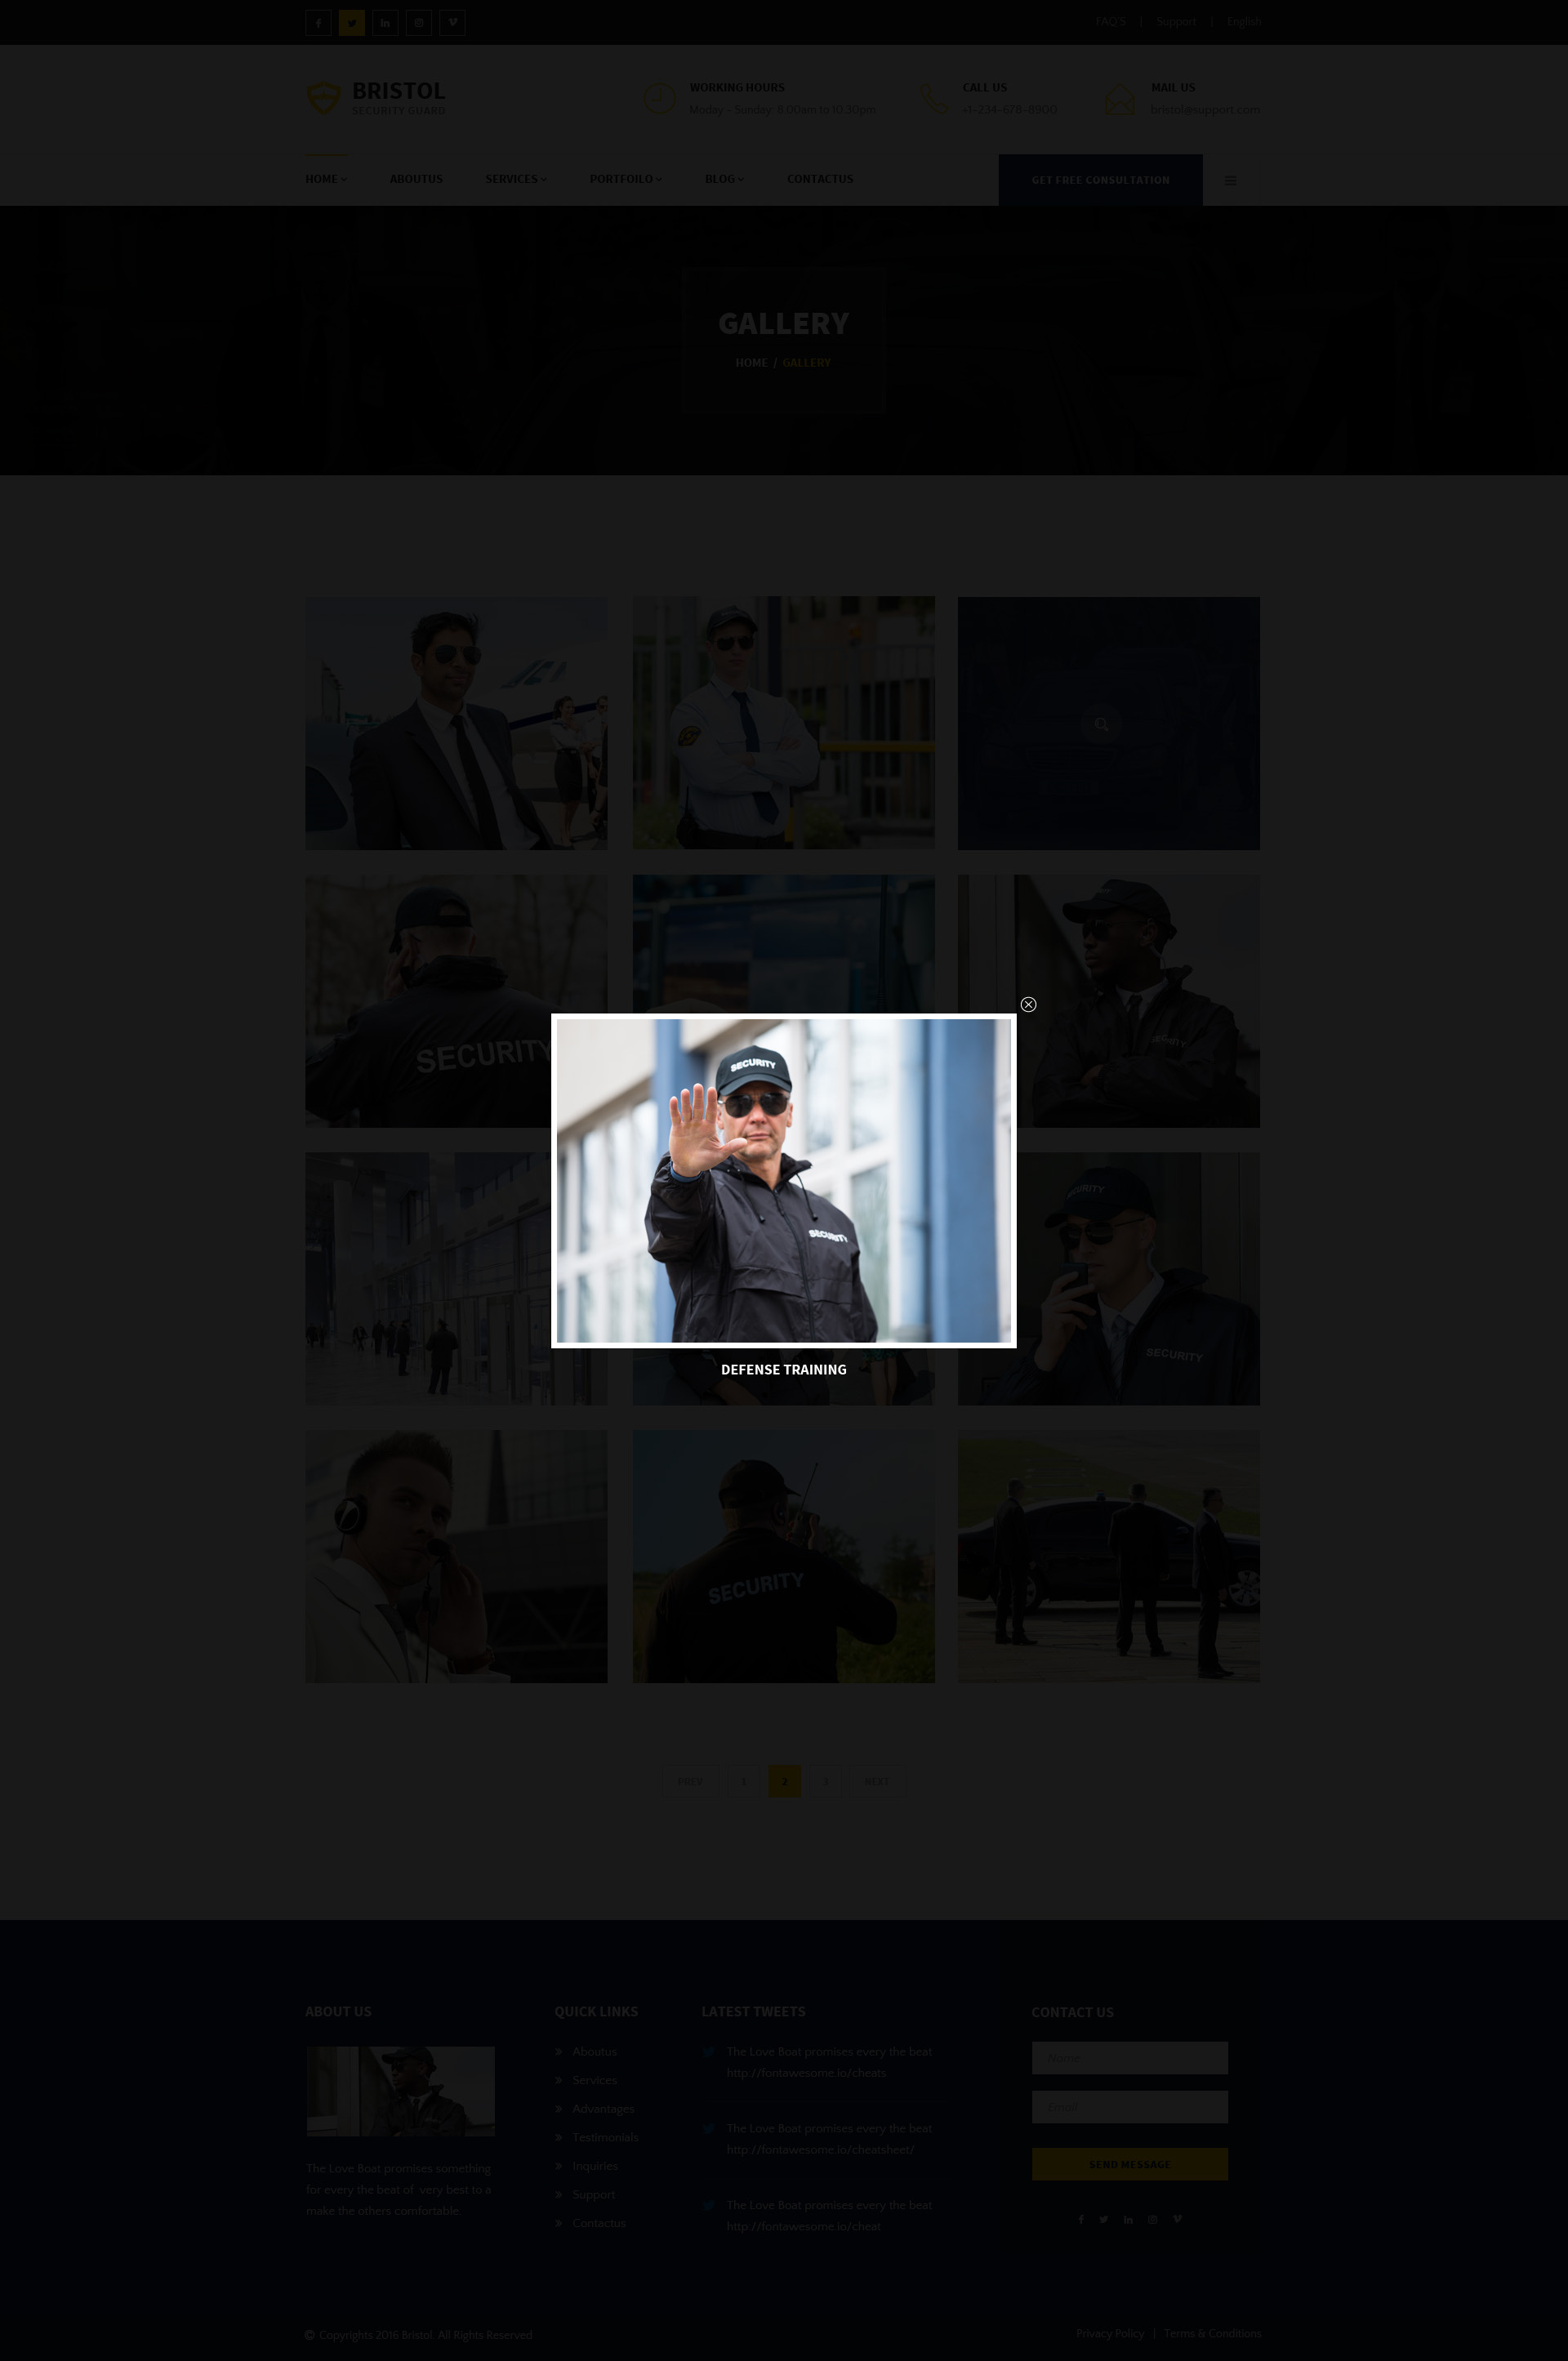 bristol security guard psd template by tonatheme themeforest bristol security guard preview 08 gallery preview jpg